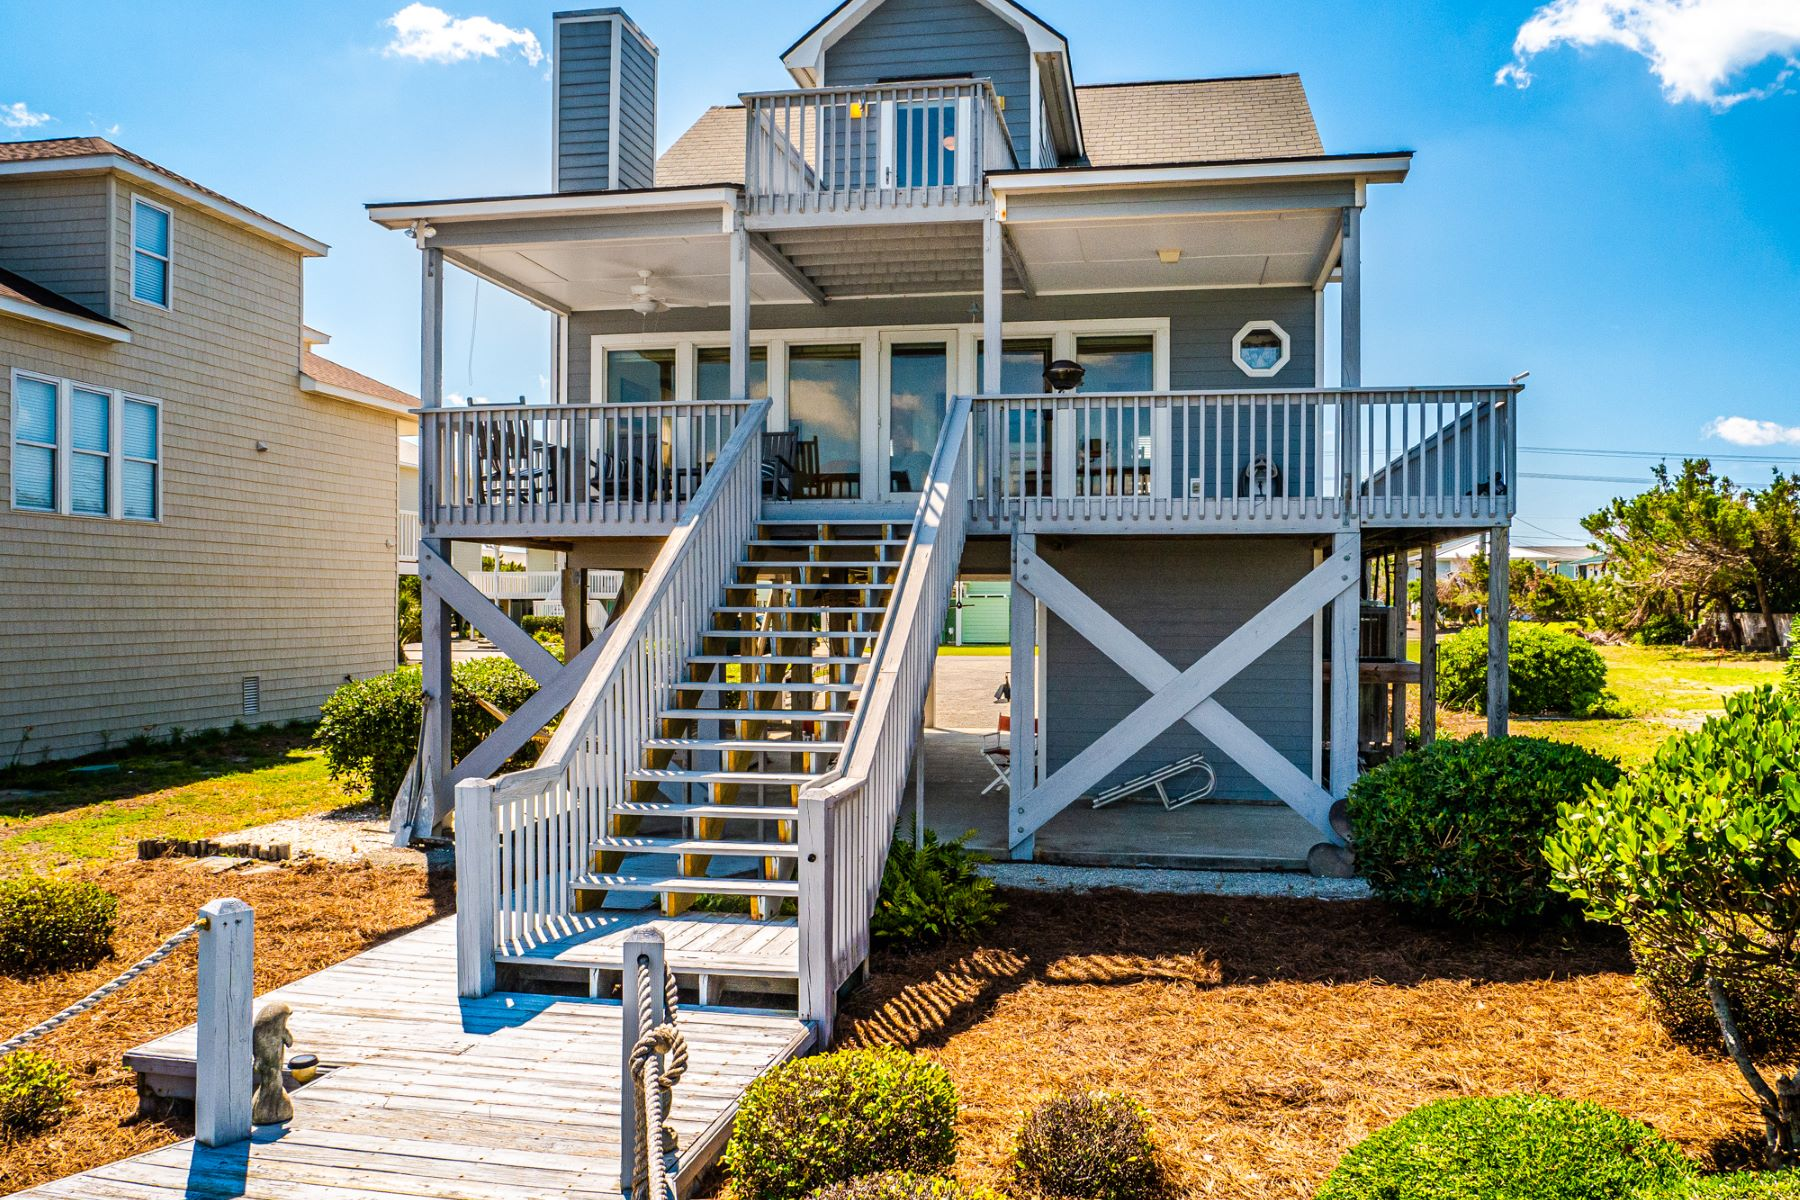 Single Family Homes for Active at Inviting Sound Front Property in Sea Path Shores 905 Sea Path Lane Topsail Beach, North Carolina 28445 United States